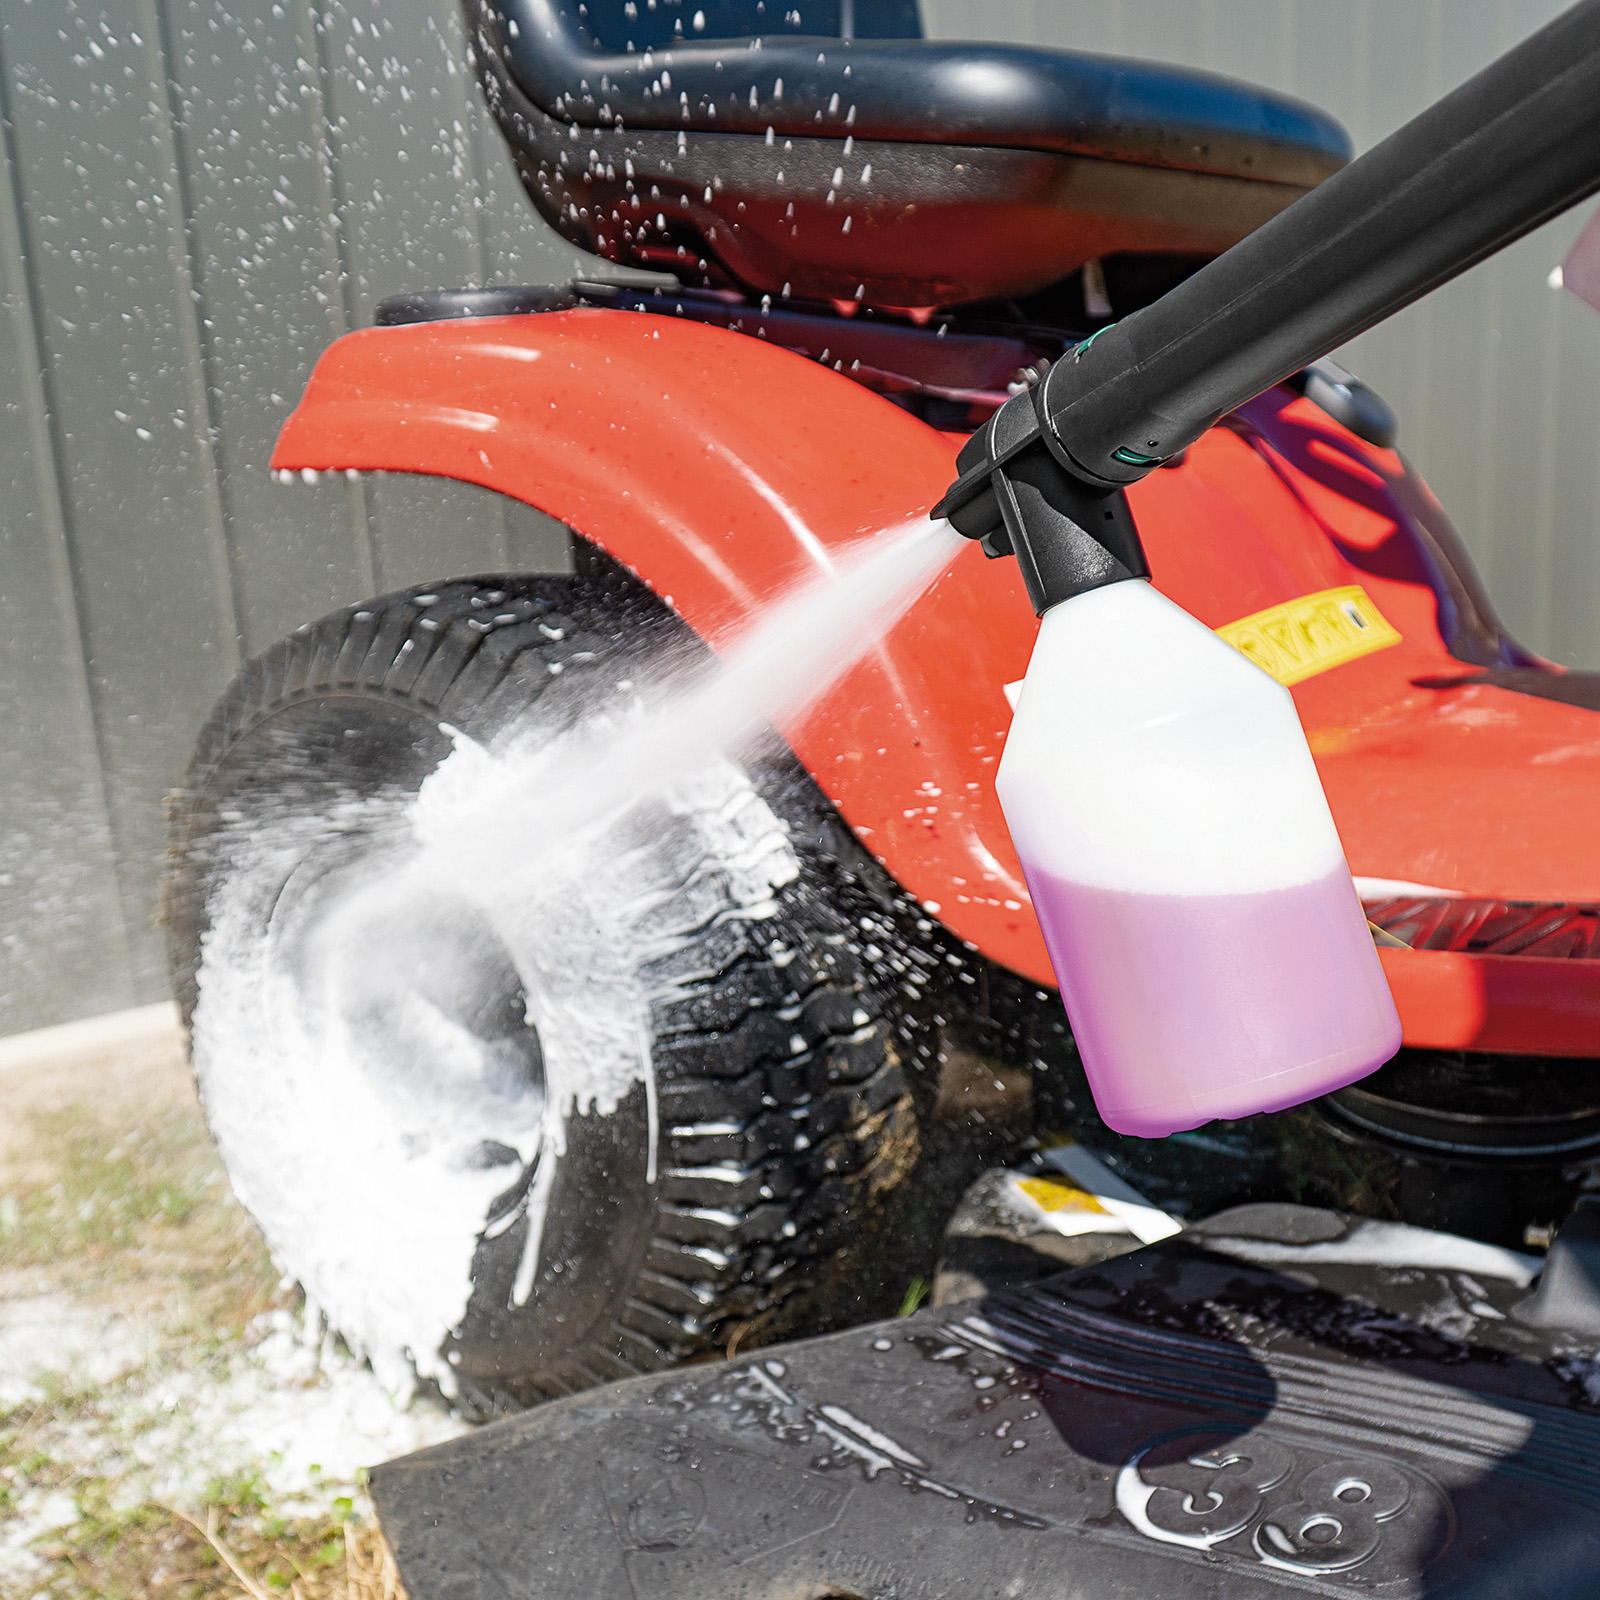 Gerni Foam Sprayer - Ride-On Mower Cleaning - All Purpose Detergent